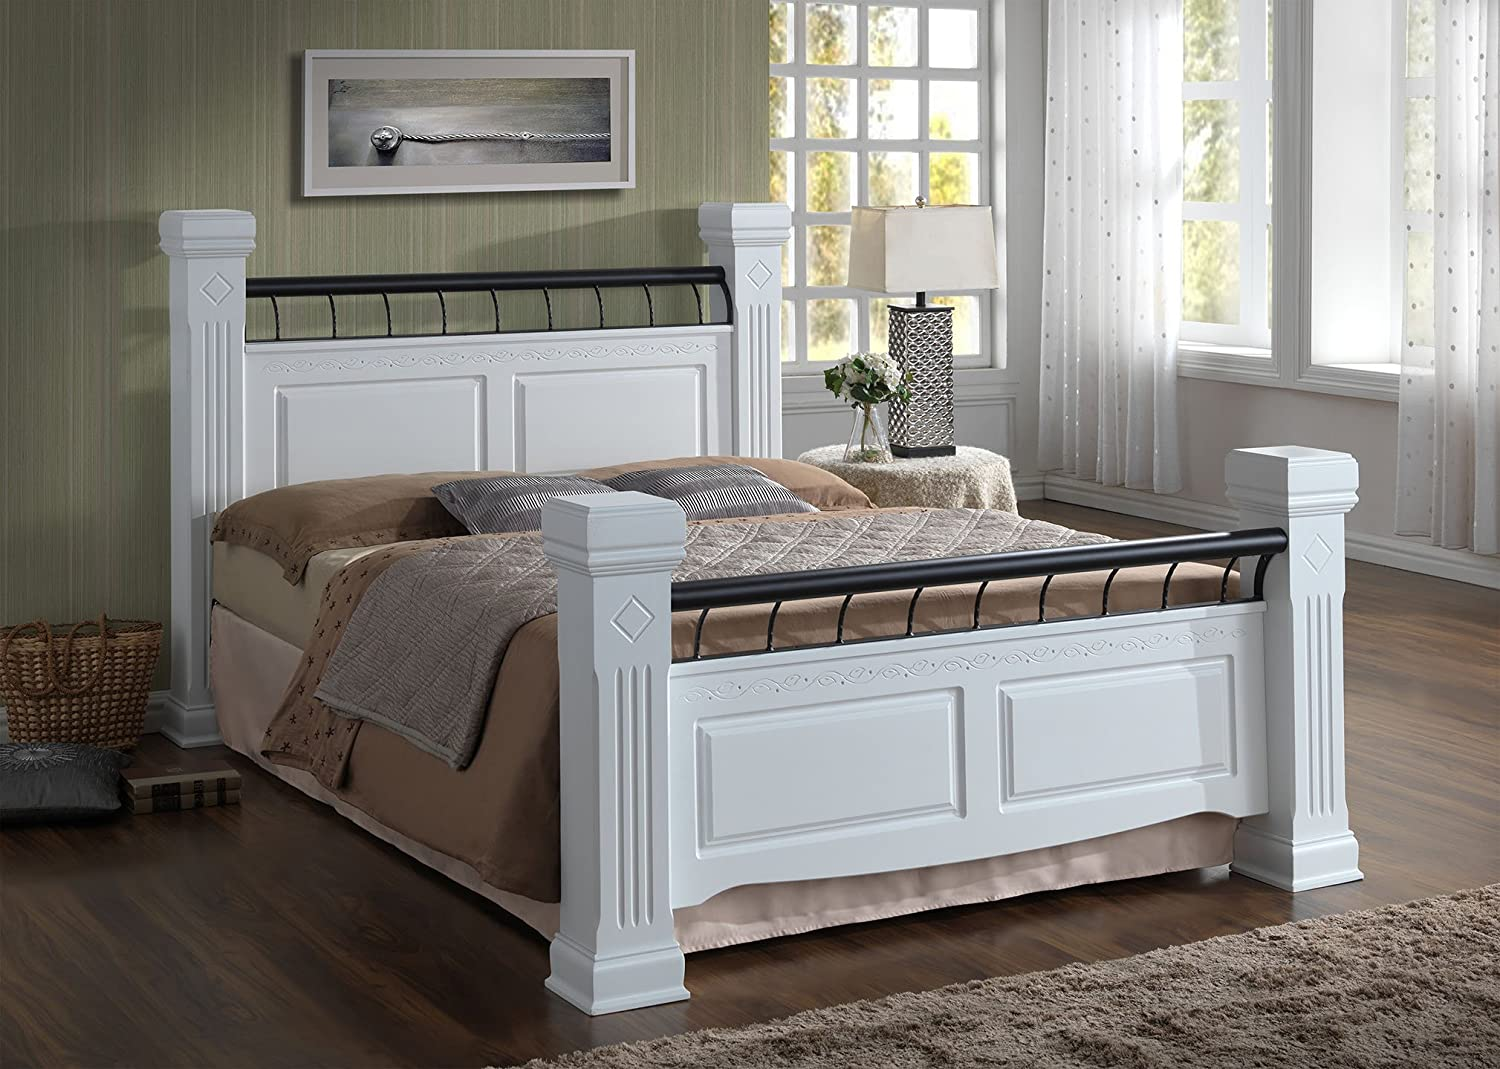 Wooden bed frames double - Ideal Furniture Rolo Bed Wood White Double Amazon Co Uk Kitchen Home